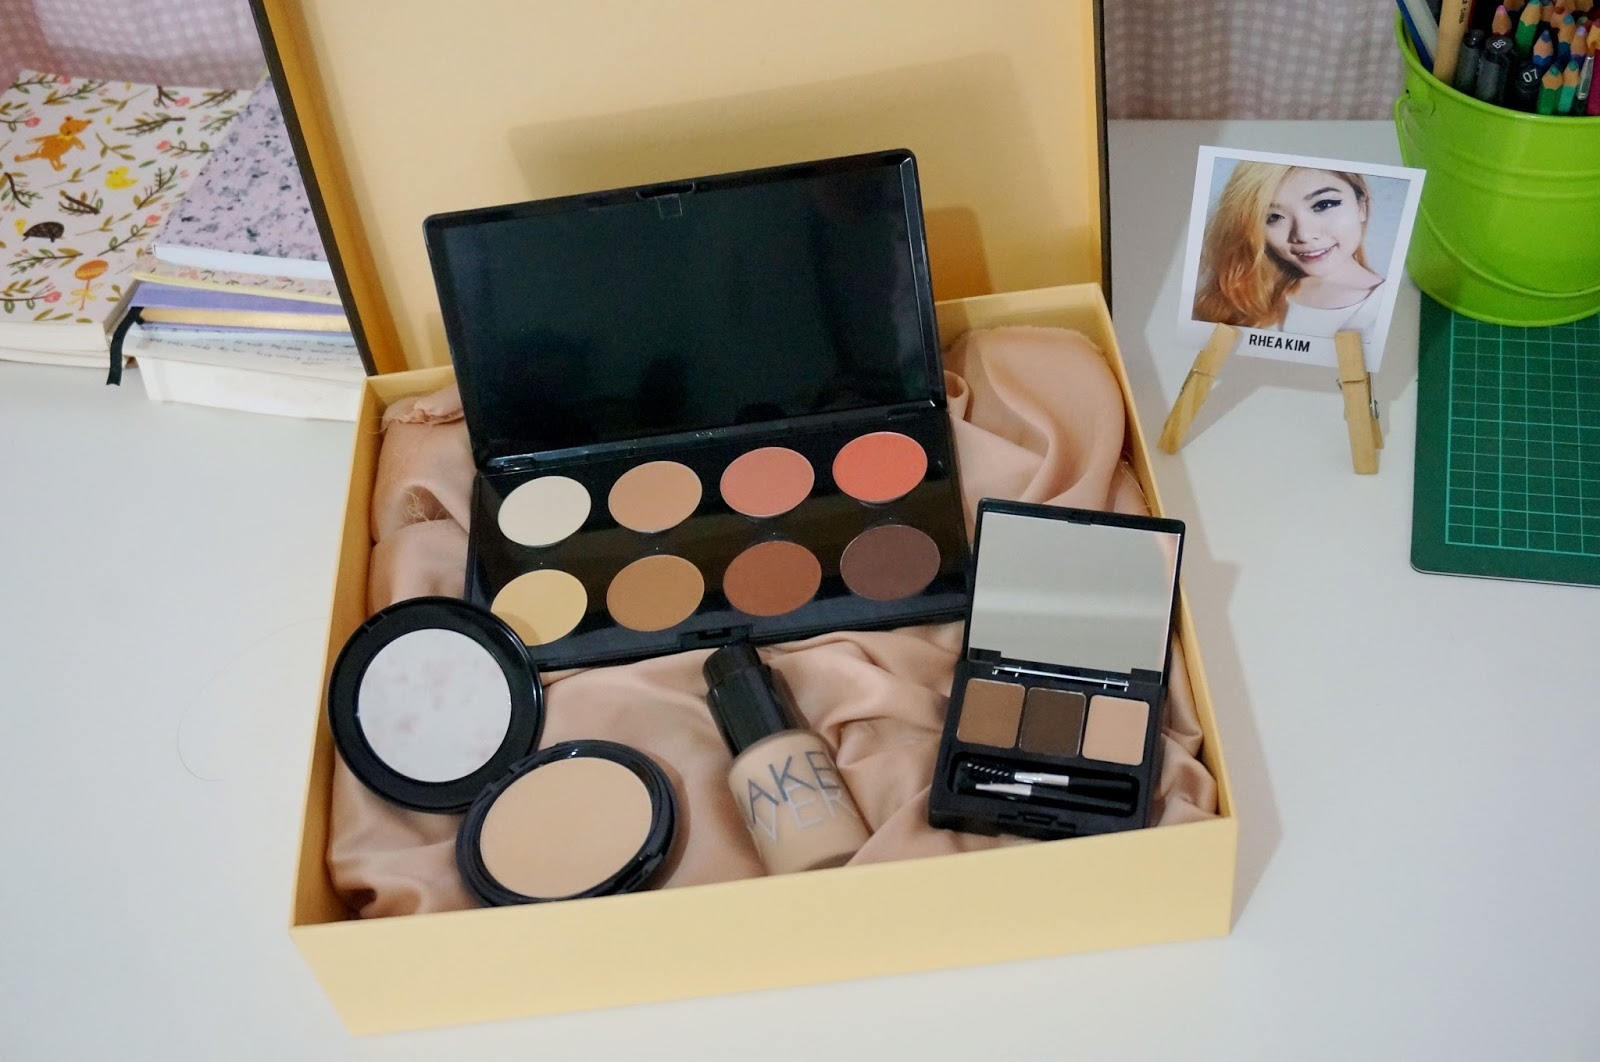 Review Make Over Complexion Set Base Msrheas Liquid Foundation Allright One Of My Favorite Brand They Gave Me A Package Consists Contour And Blush Palette